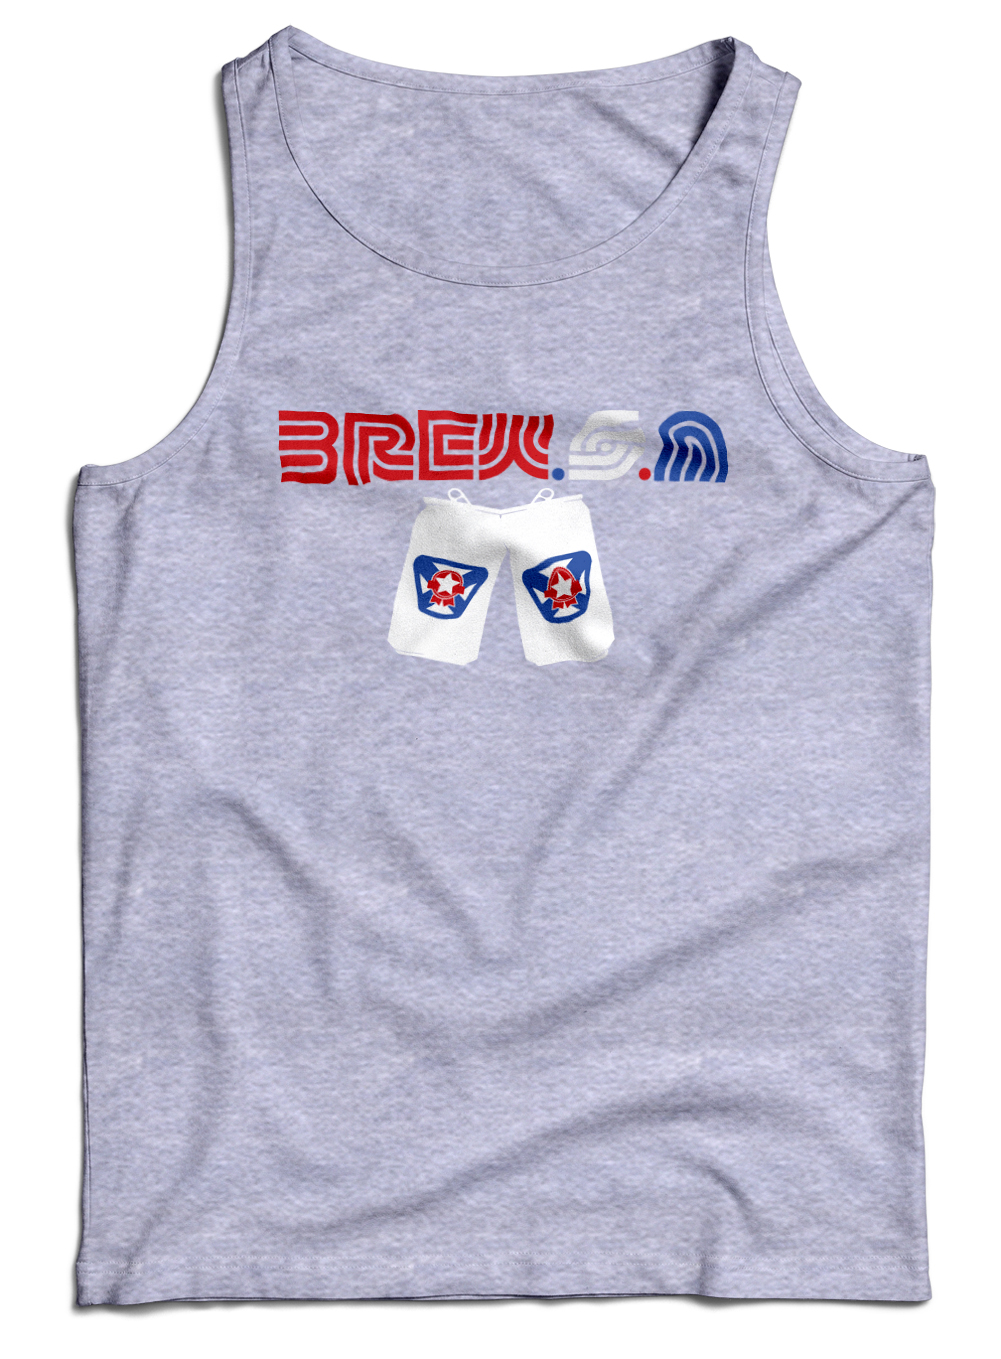 Brew S.A. | Cool Patriotic Drinking Shirt Model